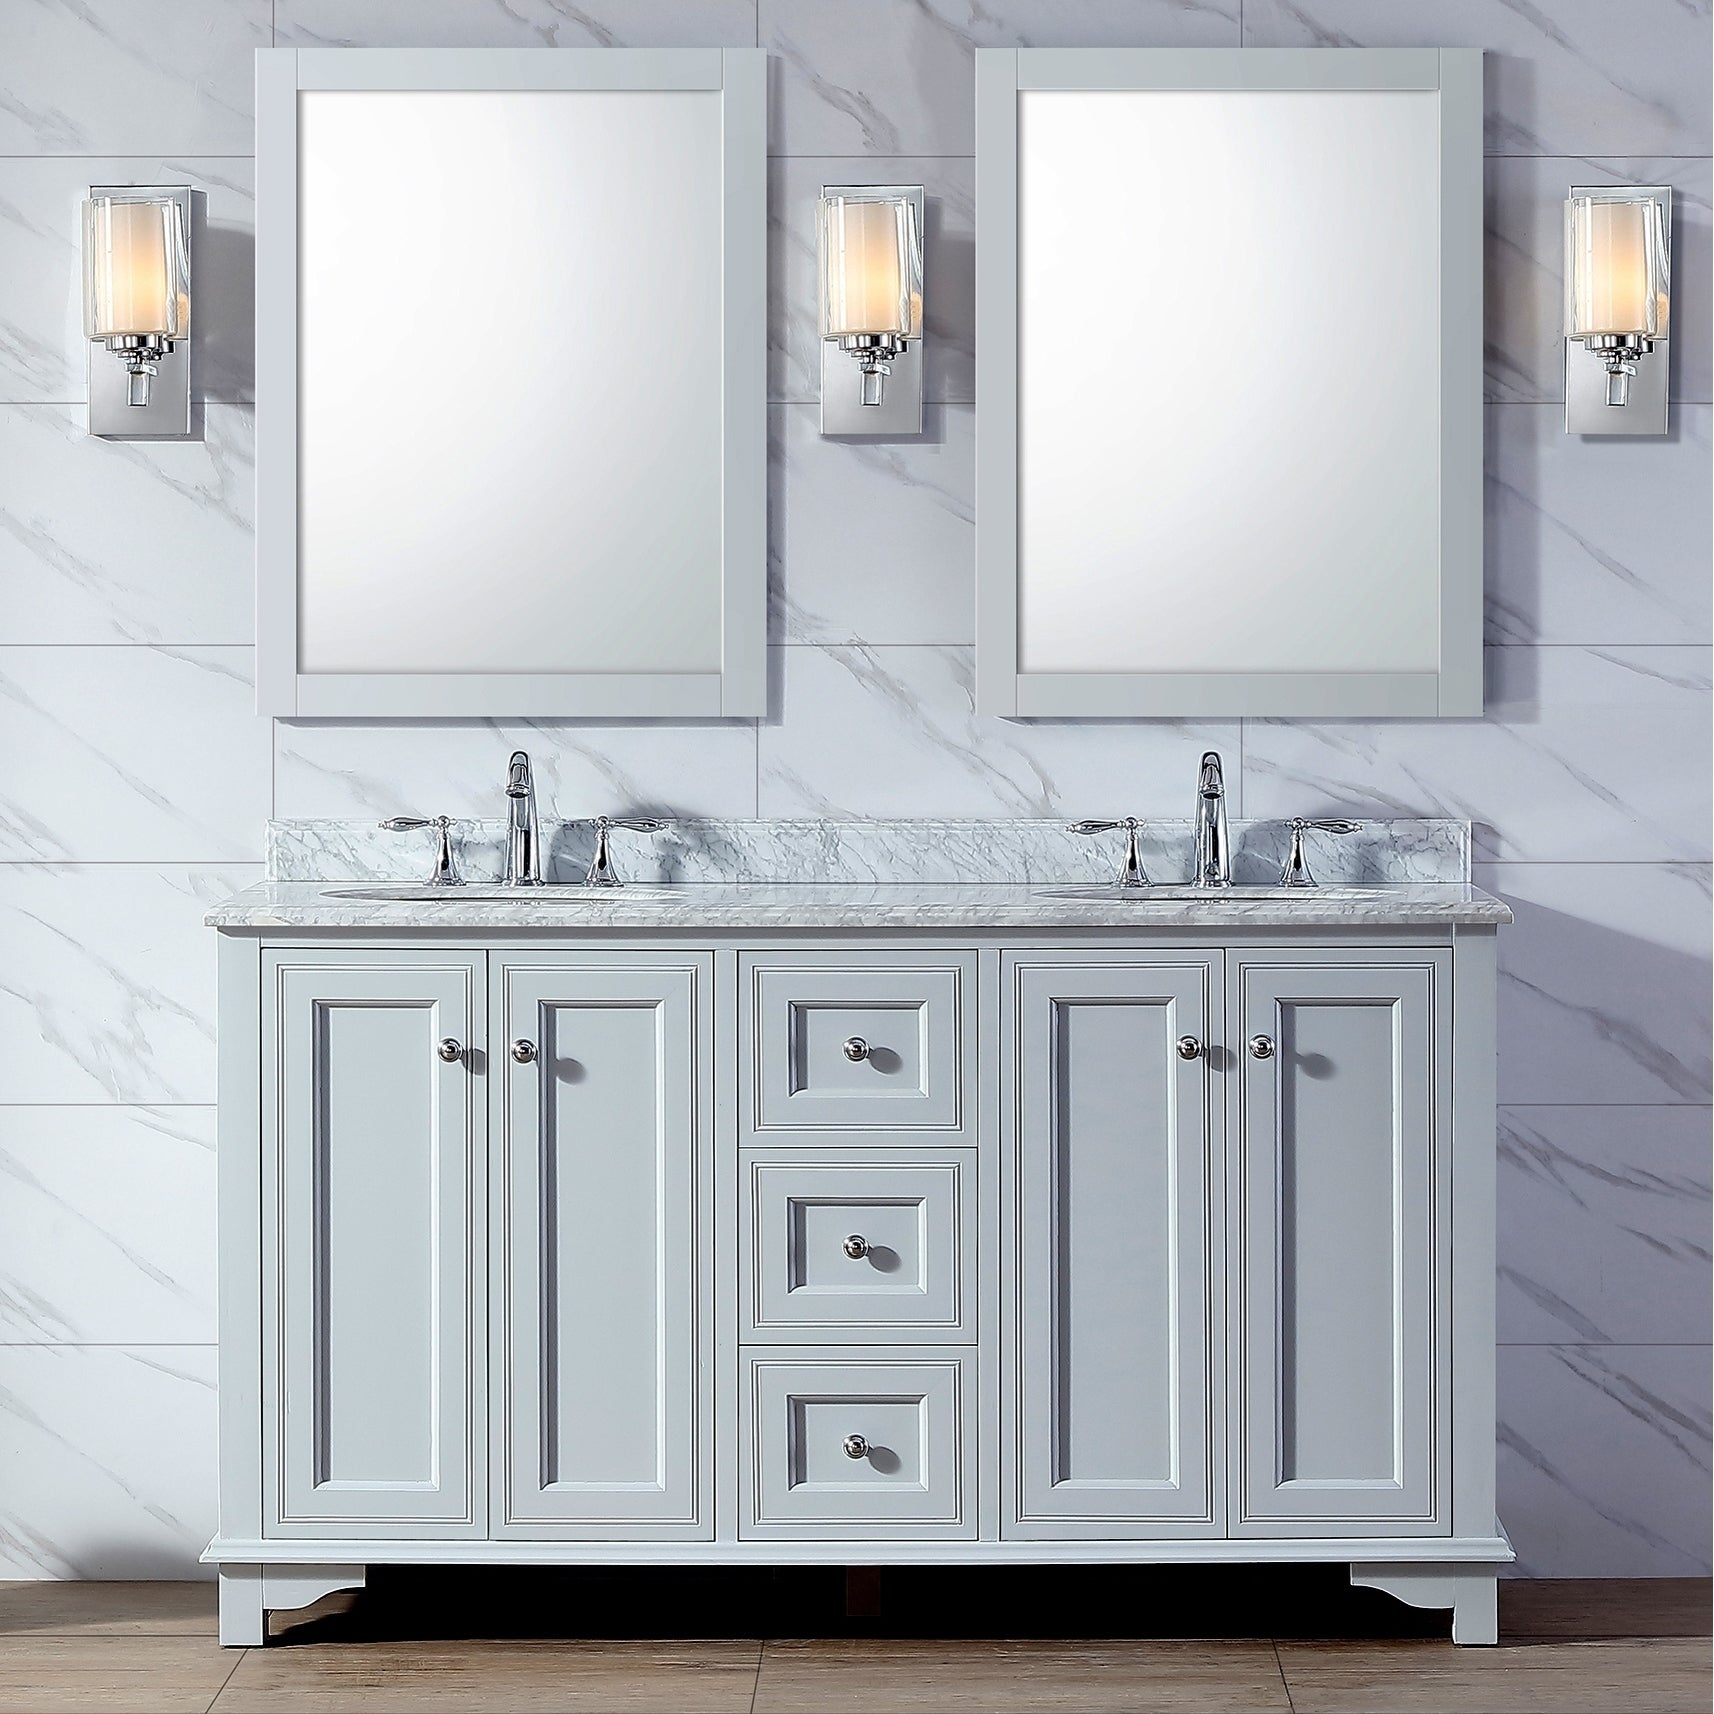 designs home gallery inch interior rooms colorful ideas double best modern under at vanities wonderful view sink vanity design amazing